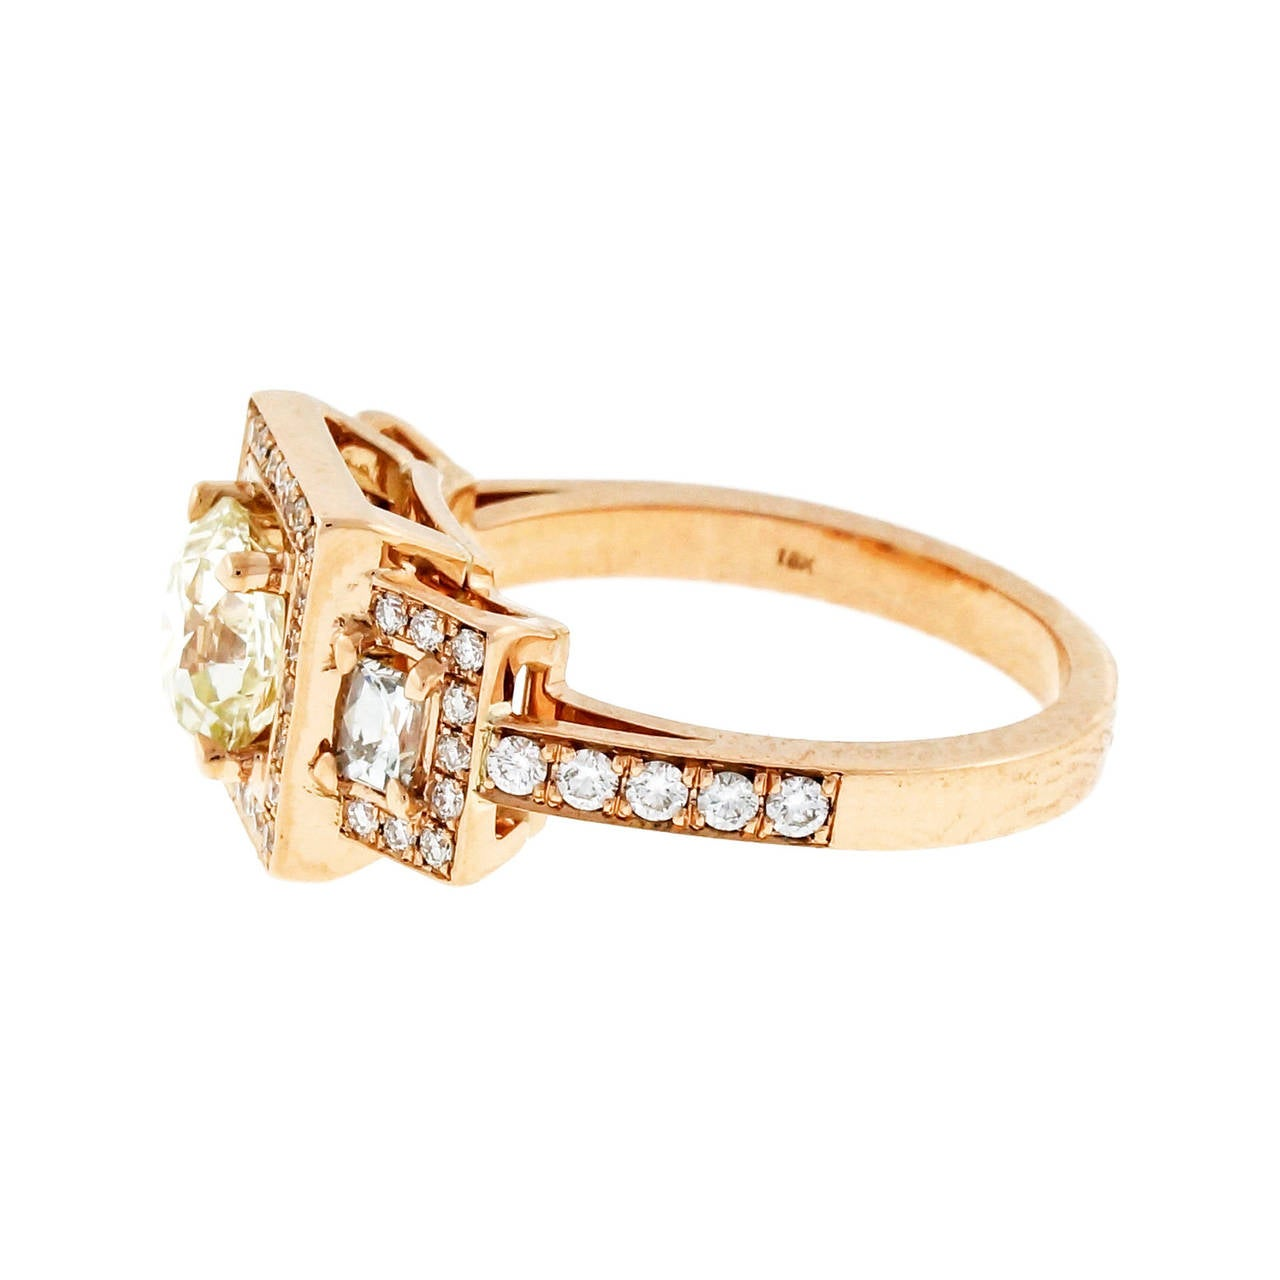 Peter Suchy 1.26 Carat Diamond Rose Gold Triple Halo Engagement Ring 5